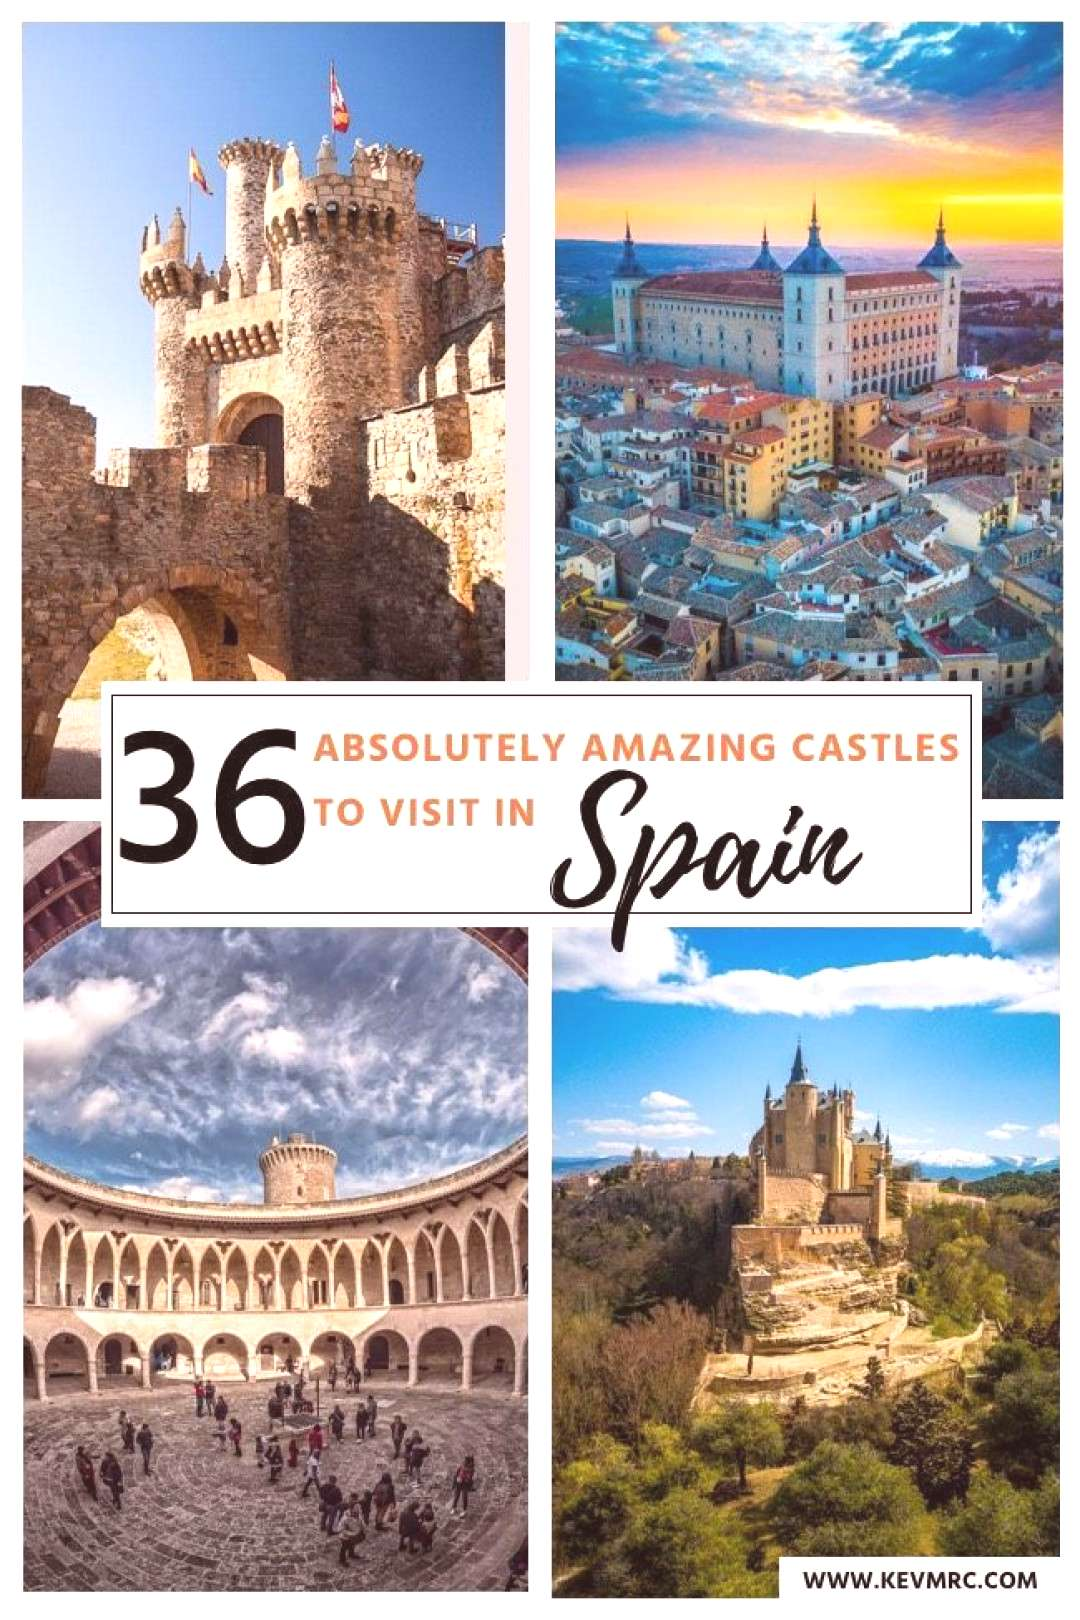 The 36 BEST Castles in Spain (with Photos, Maps amp Practical Infos) 36 absolutely amazing castles to